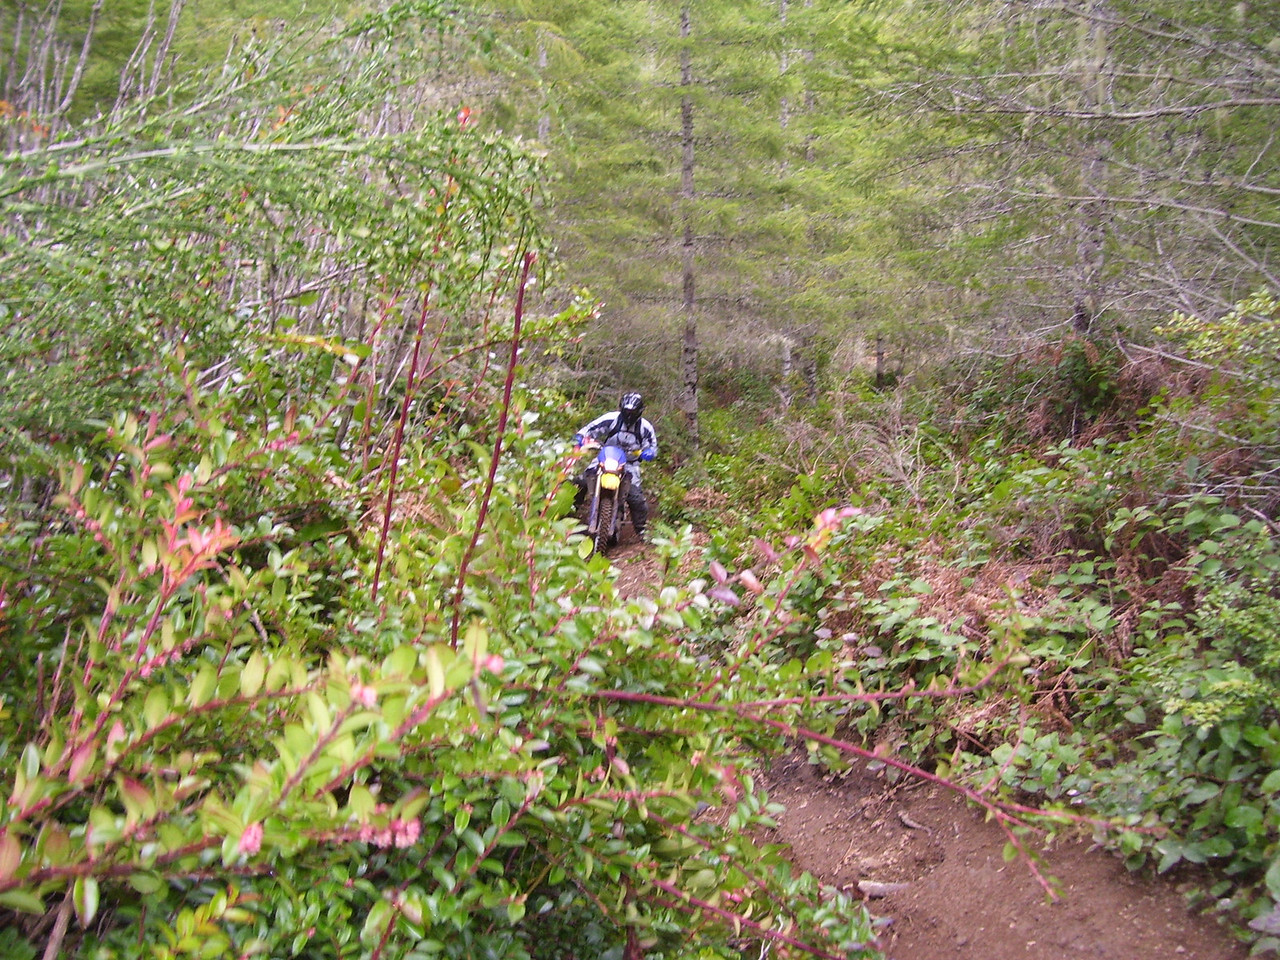 The last Trail, just Mark and I on part of the Sparkplug Enduro route. This was a nasty 1/4 mile climb.